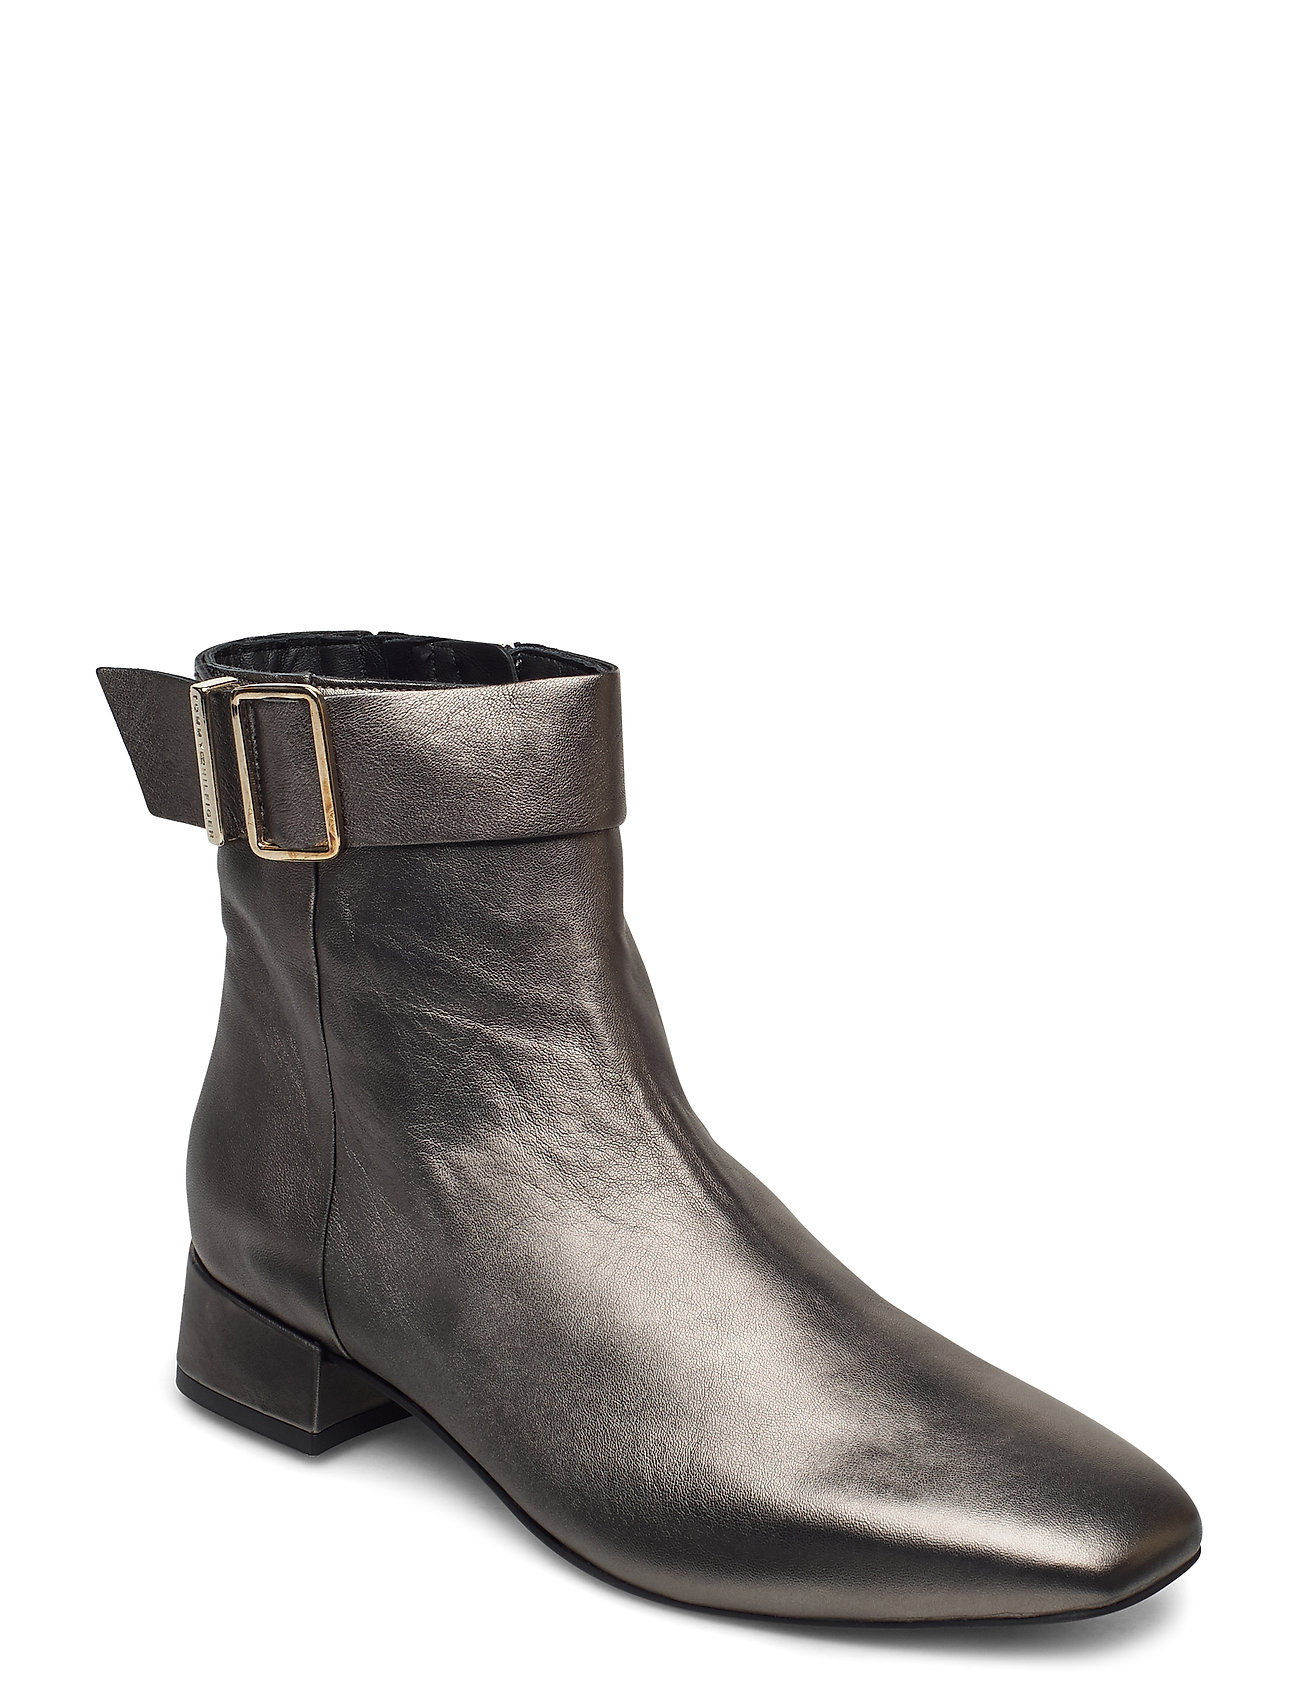 Image of Metallic Square Toe Mid Boot Shoes Boots Ankle Boots Ankle Boot - Heel Sølv Tommy Hilfiger (3440208039)